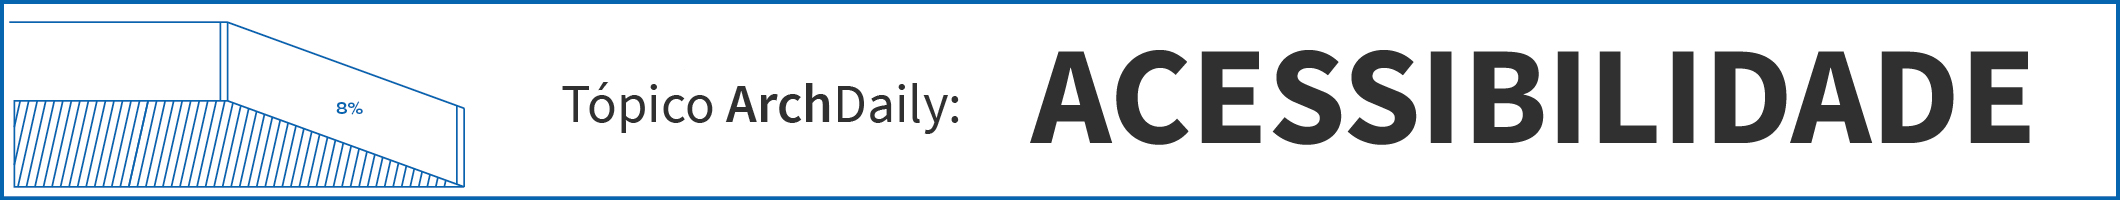 Br adtopic accessibility banner